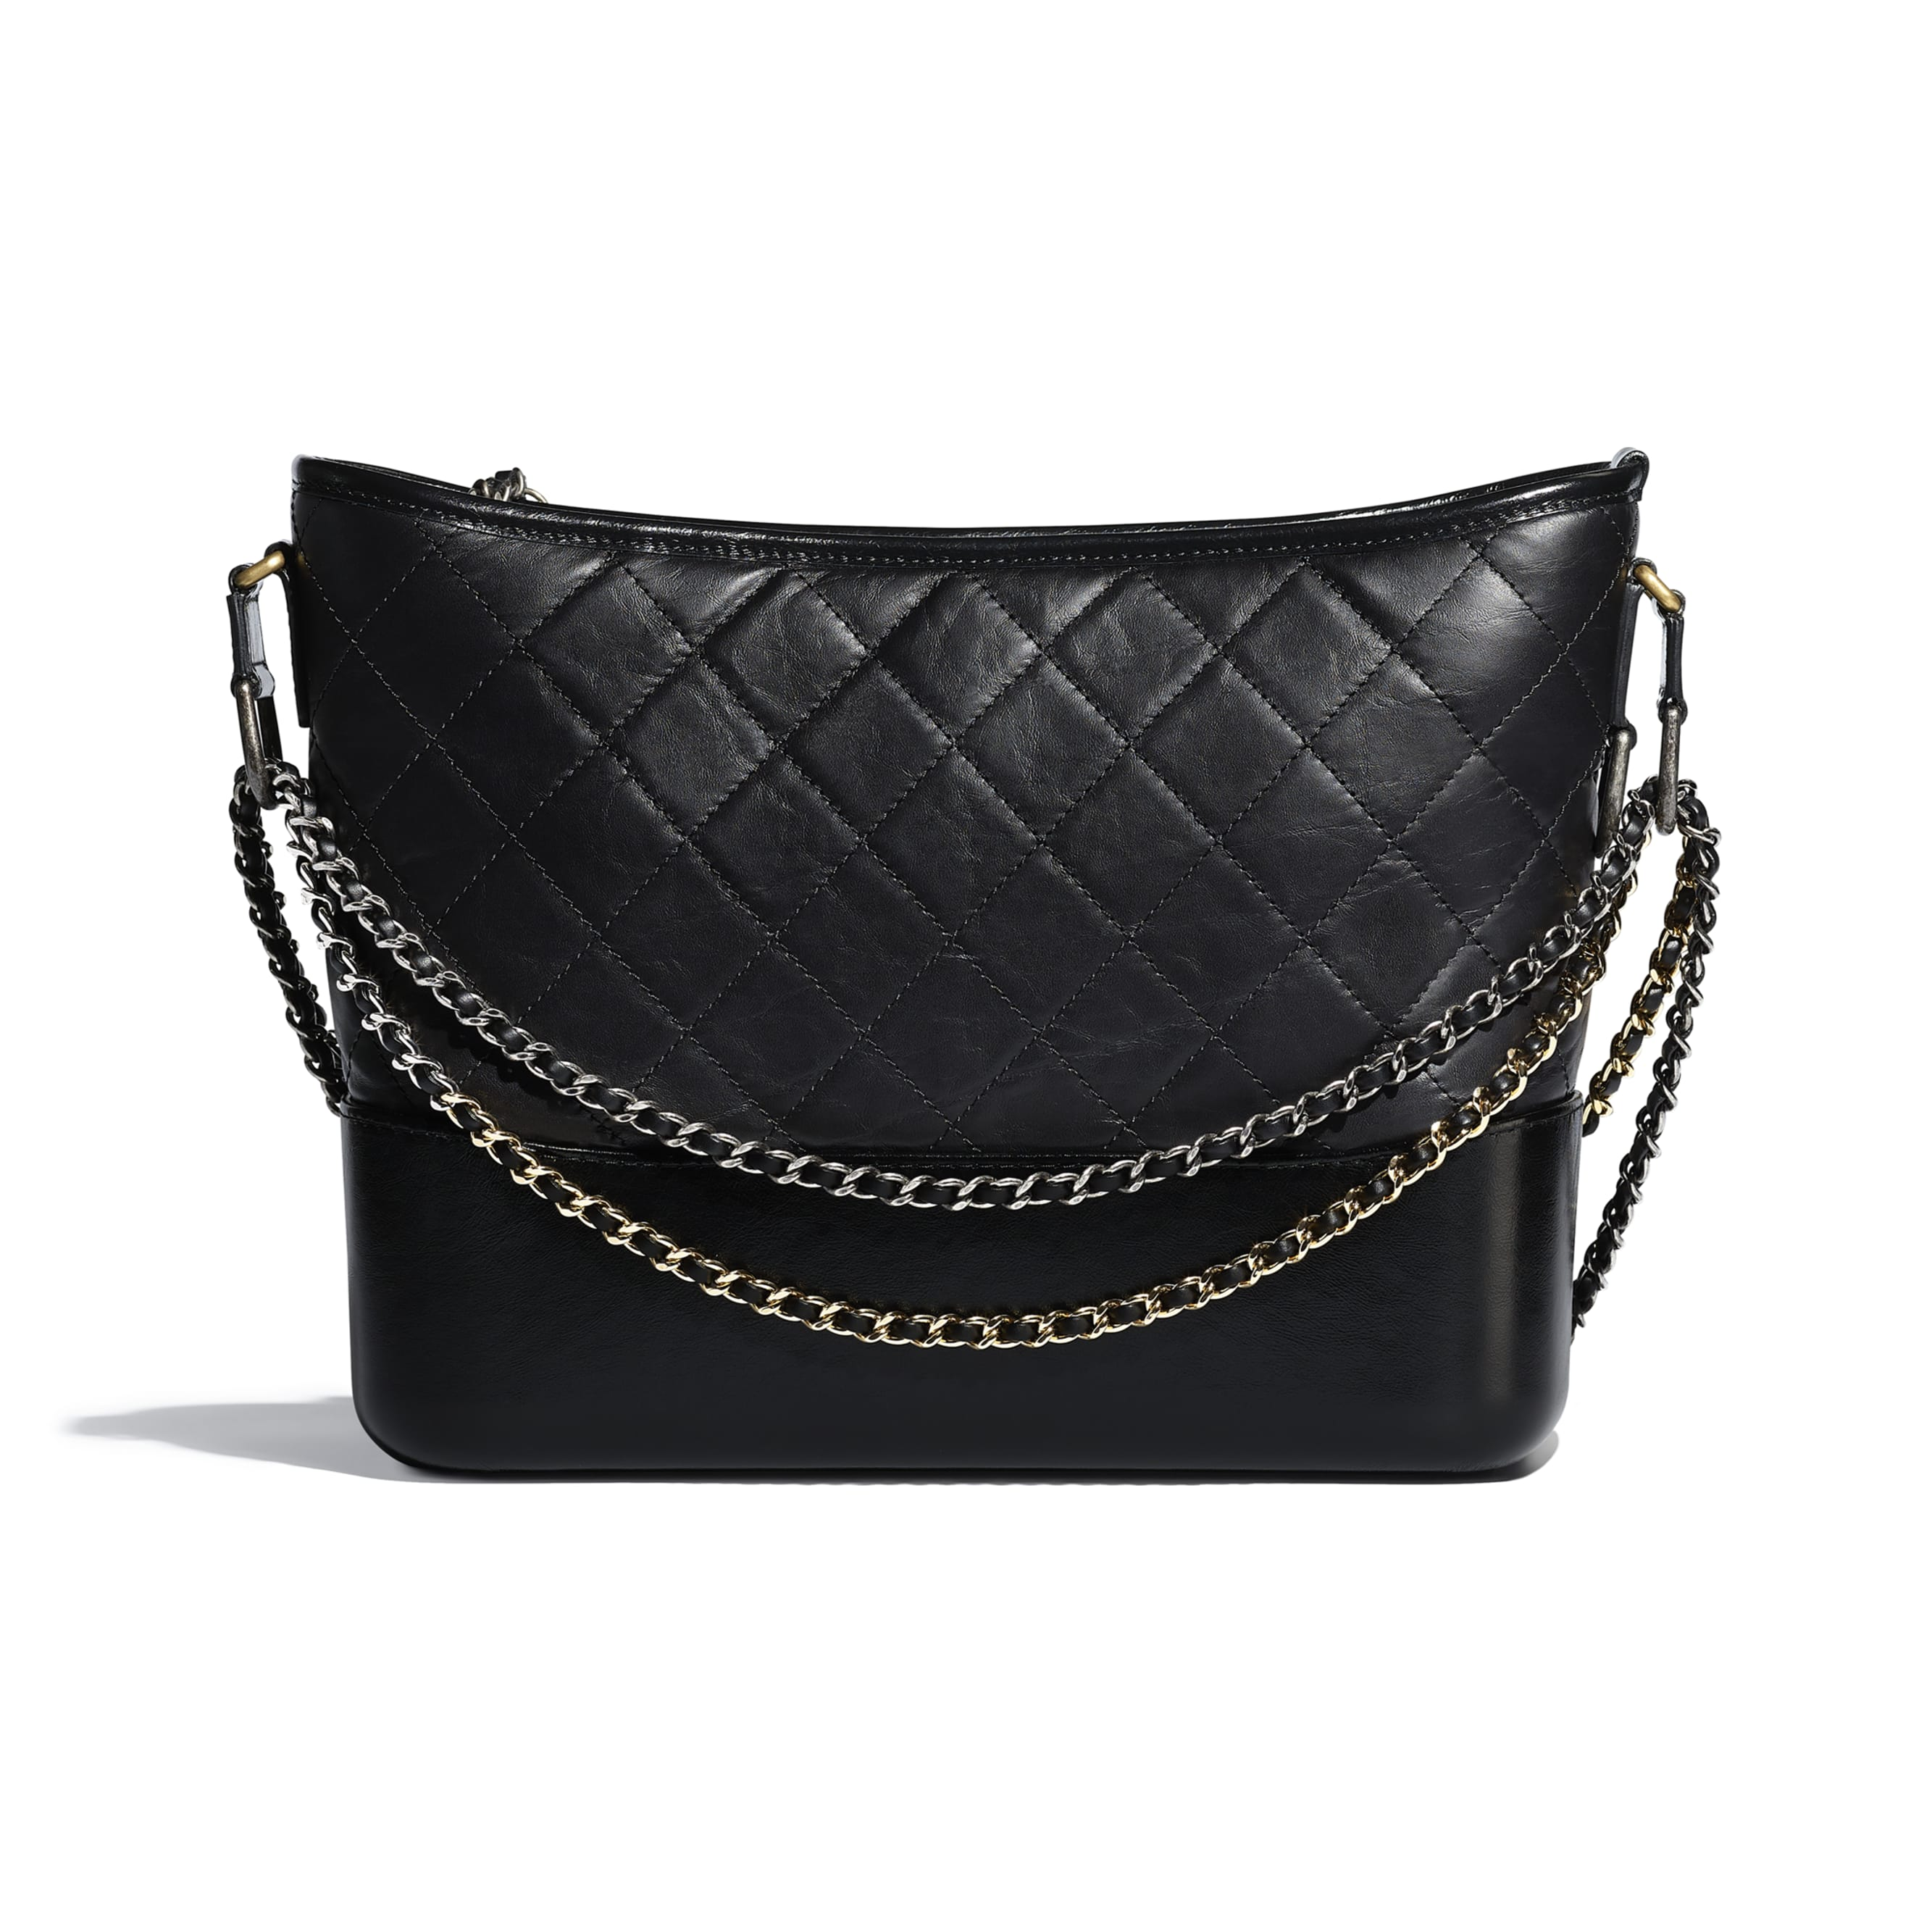 CHANEL'S GABRIELLE Large Hobo Bag - Black - Aged Calfskin, Smooth Calfskin, Gold-Tone, Silver-Tone & Ruthenium-Finish Metal - CHANEL - Alternative view - see standard sized version